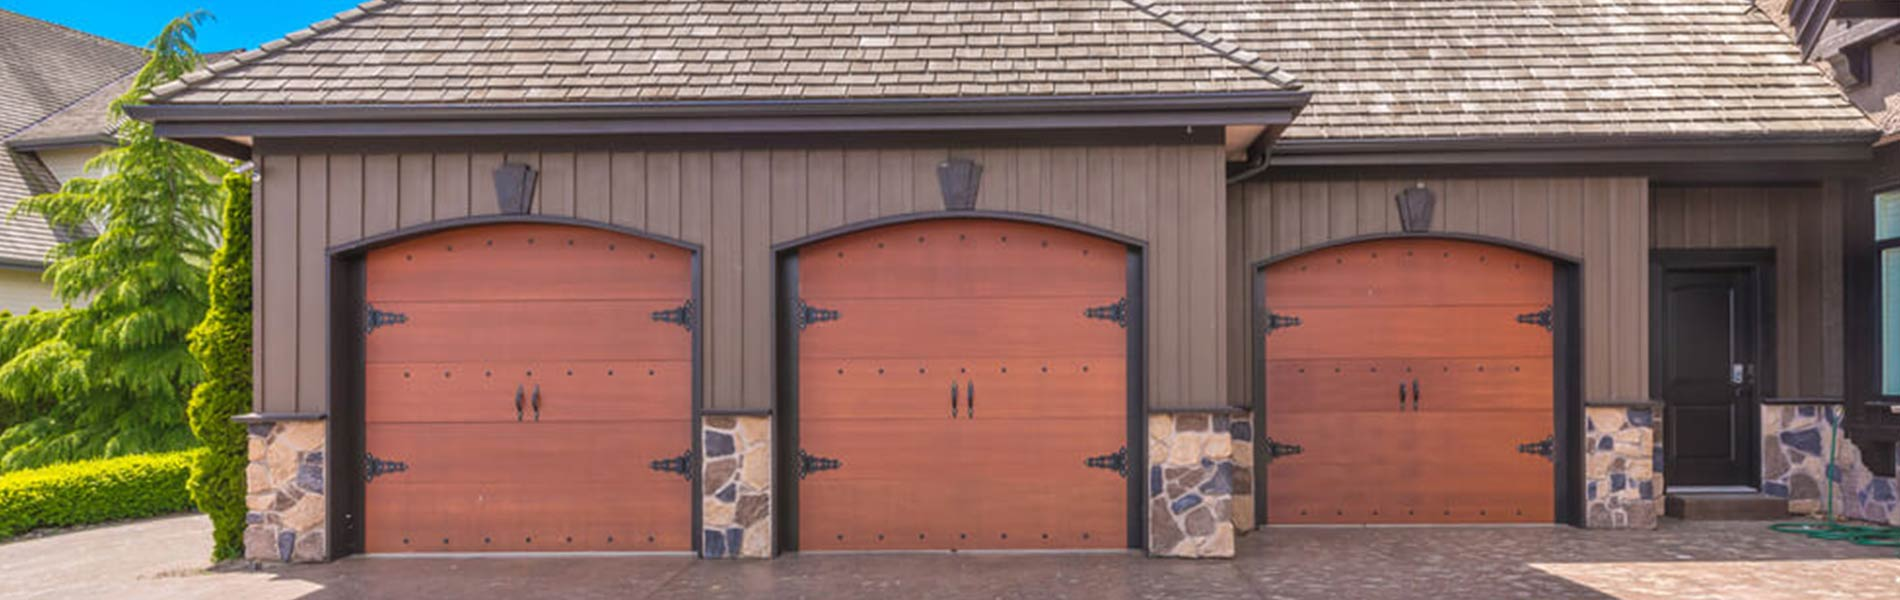 Golden Garage Door Service, Westborough, MA 508-744-3007